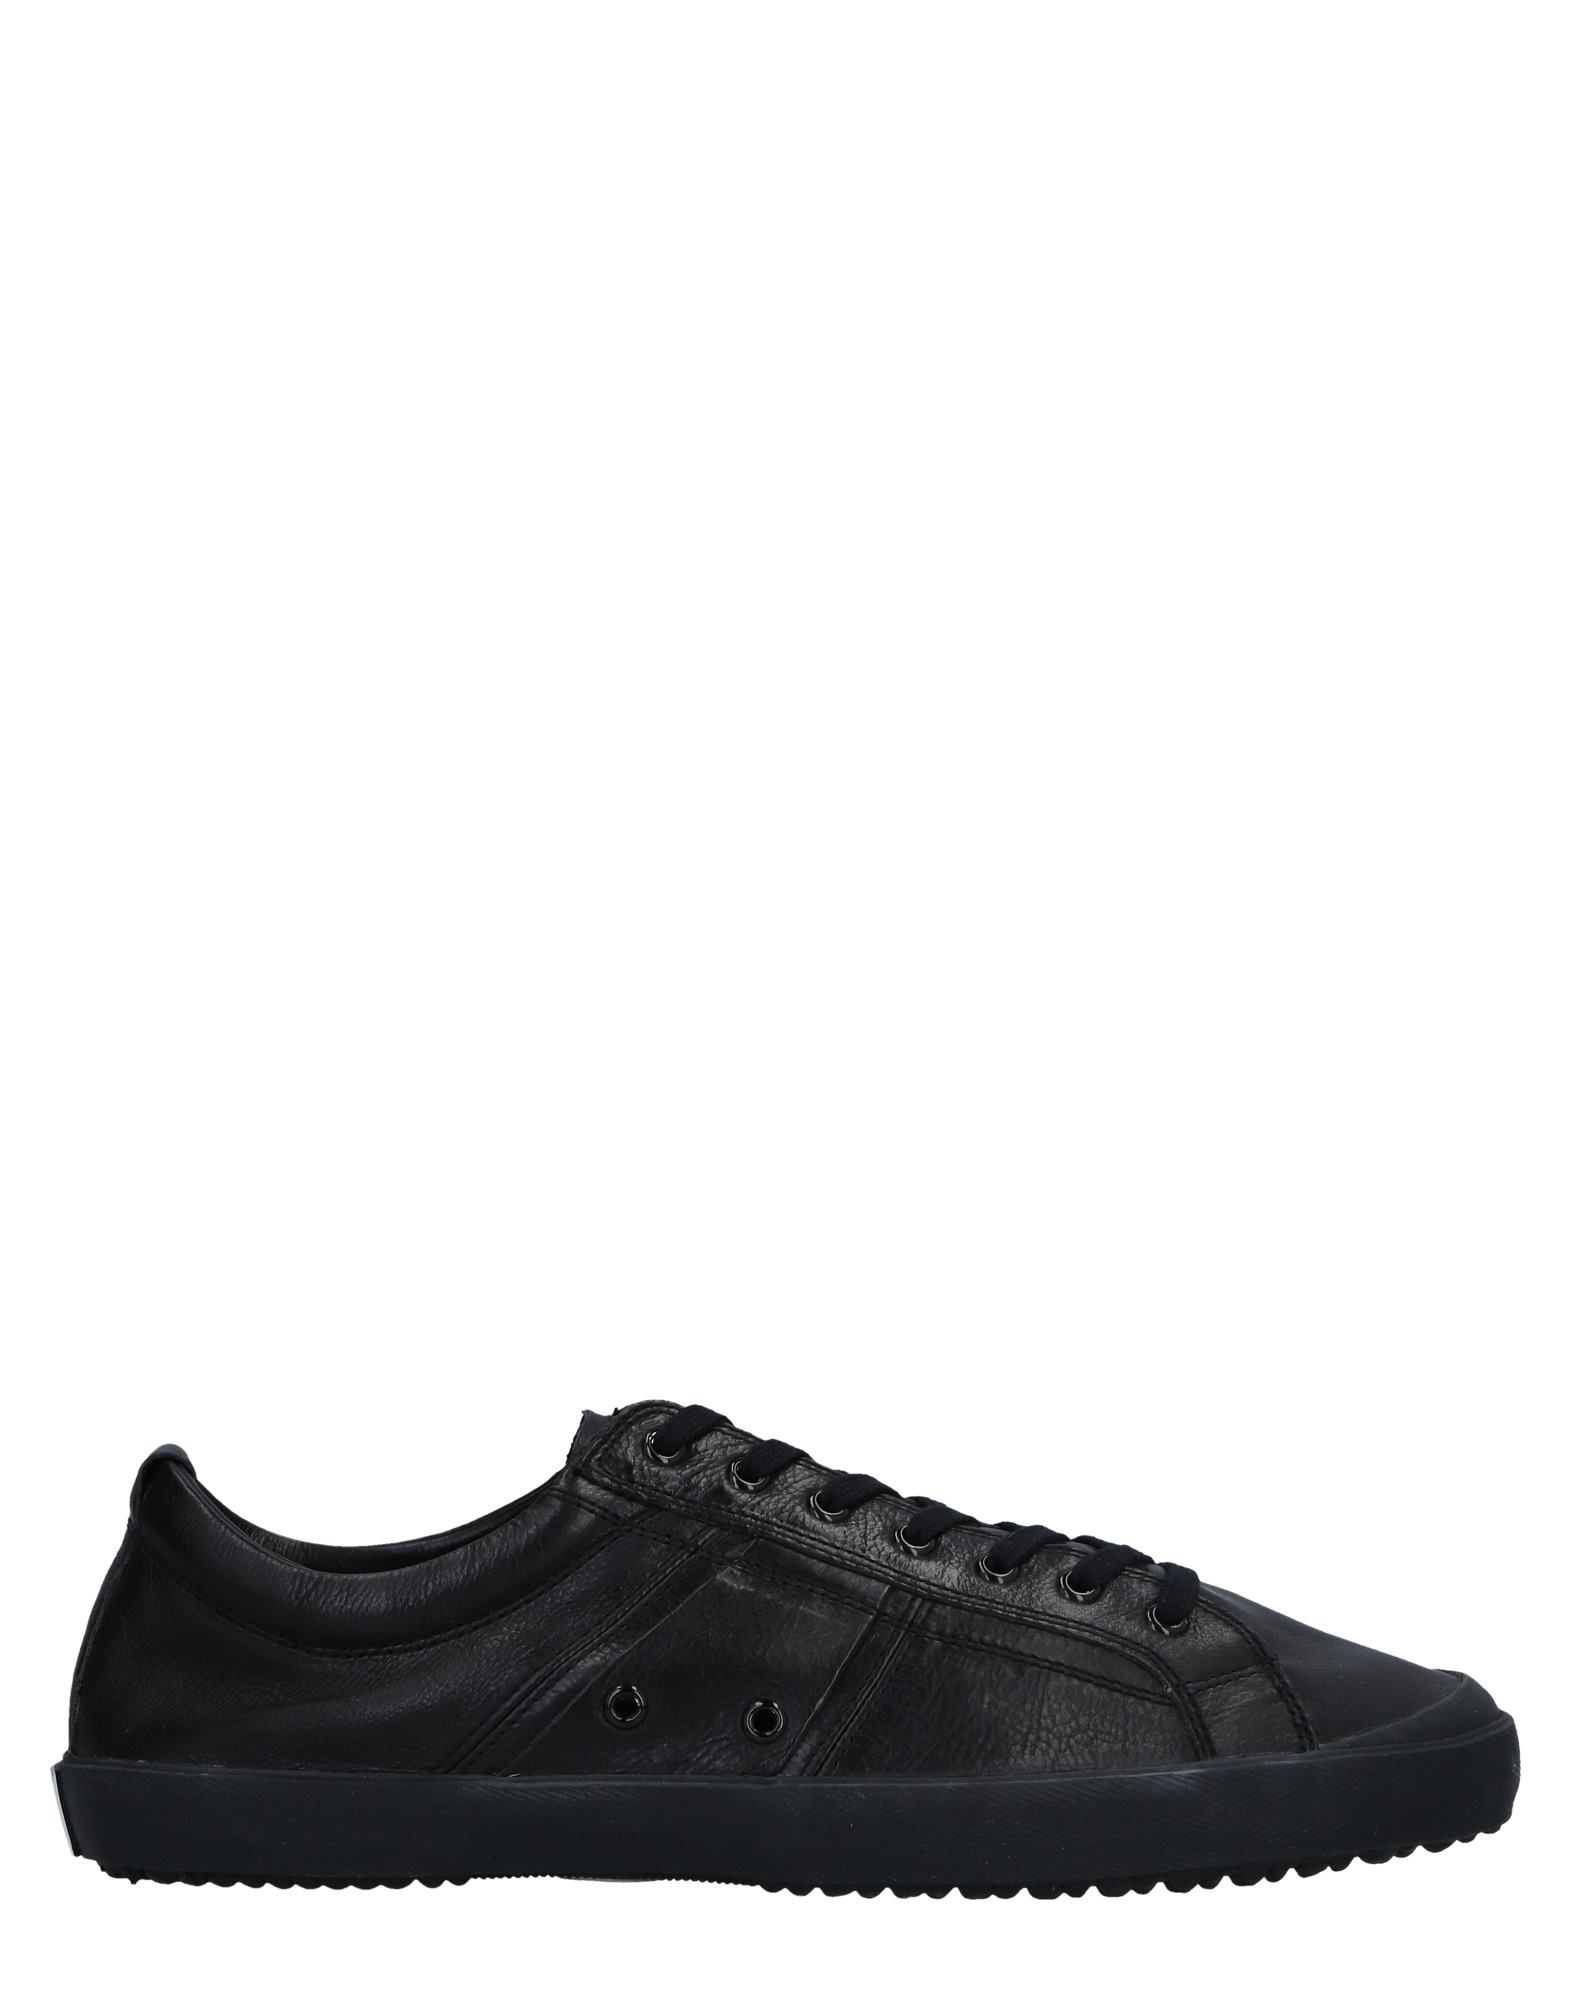 Sneakers Uomo N.D.C. Made By Hand Uomo Sneakers - 11515812VP 5107c9